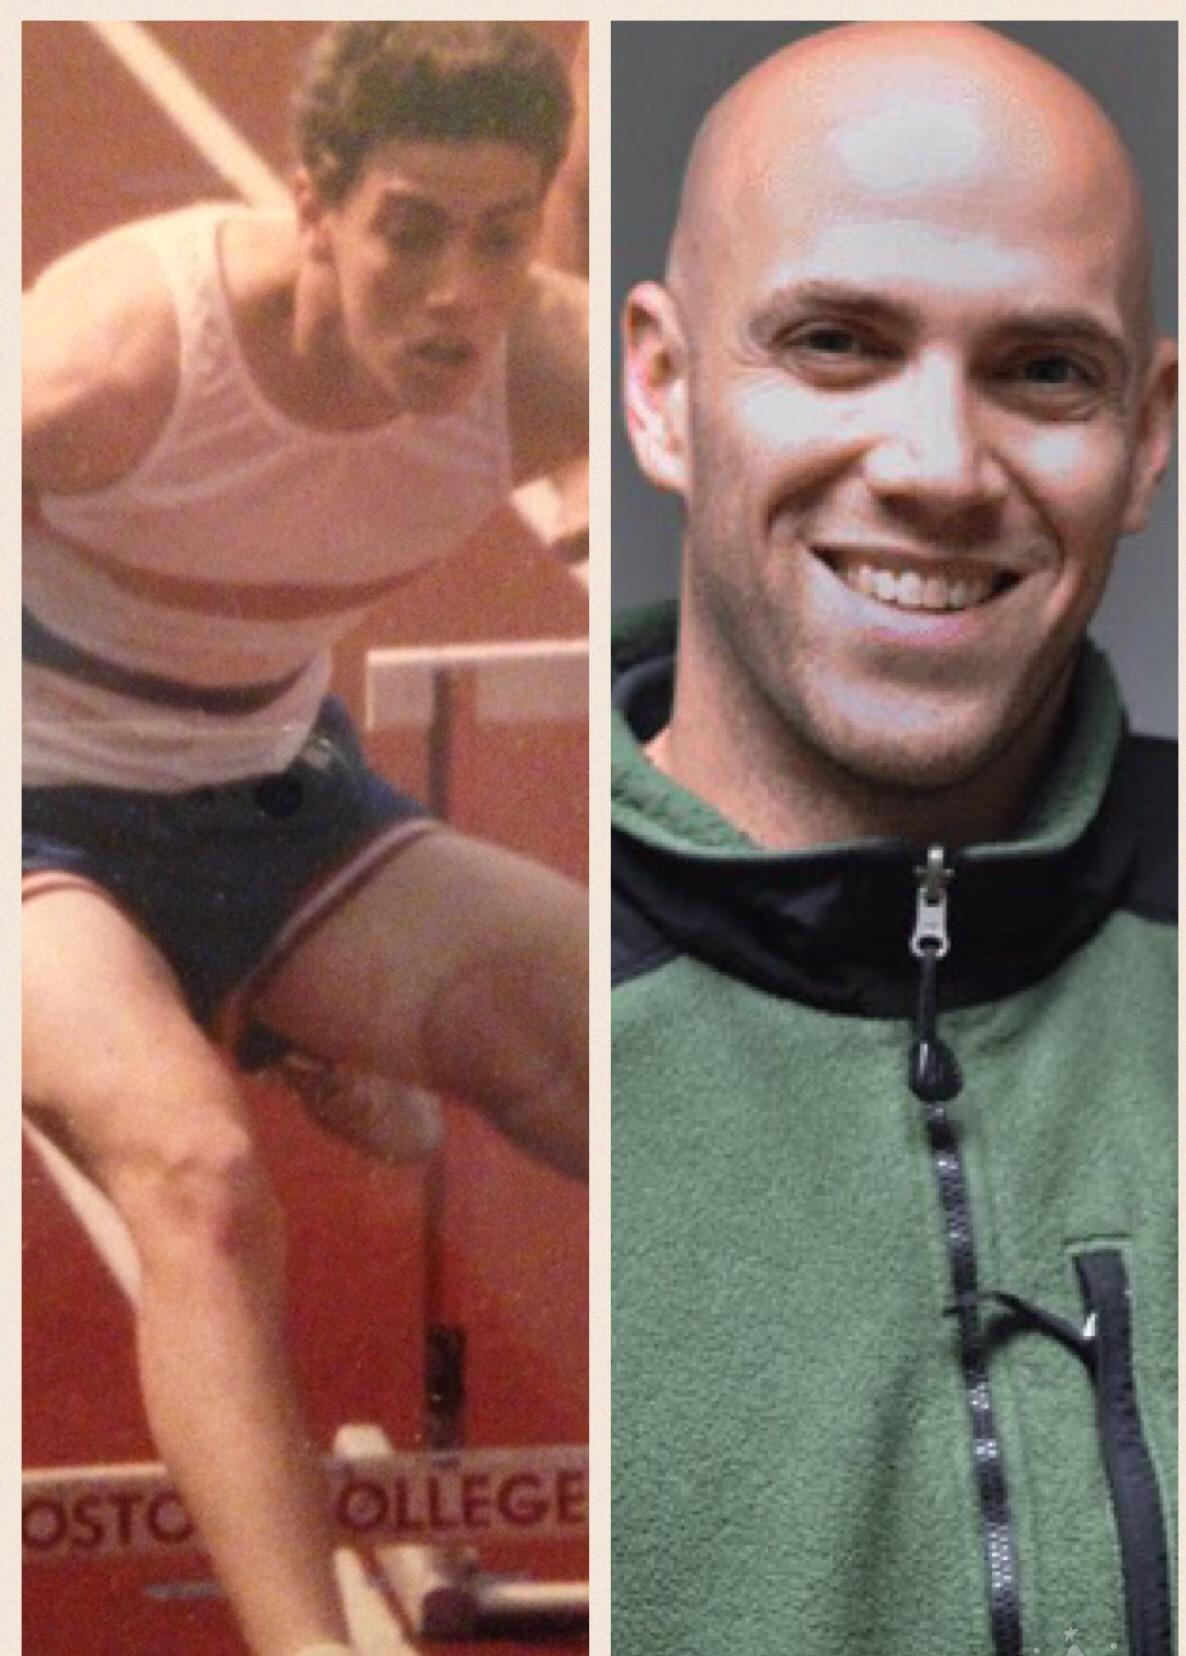 Alumnus+social+worker+Paul+Epstein+%2791+running+track+for+the+high+school+as+a+student+%28left%29+and+today+%28right%29.+